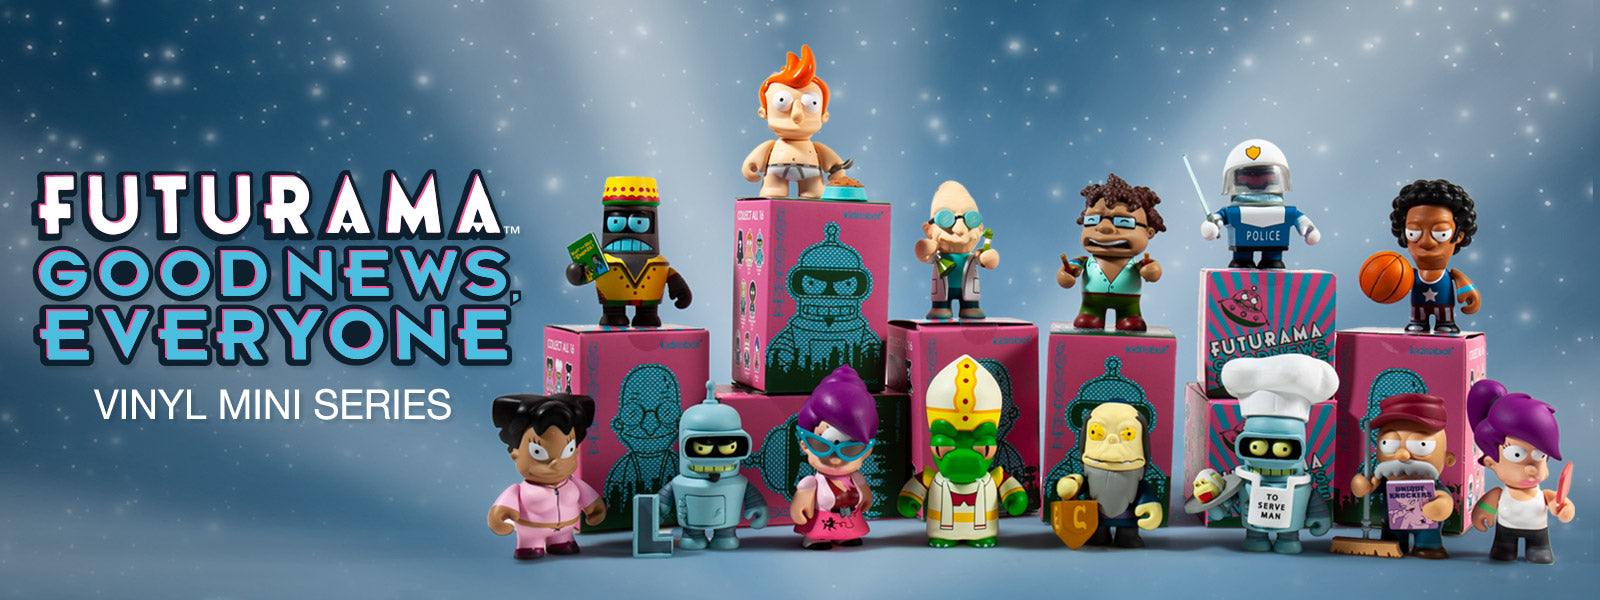 Futurama Toys, Figures and Collectibles by Kidrobot